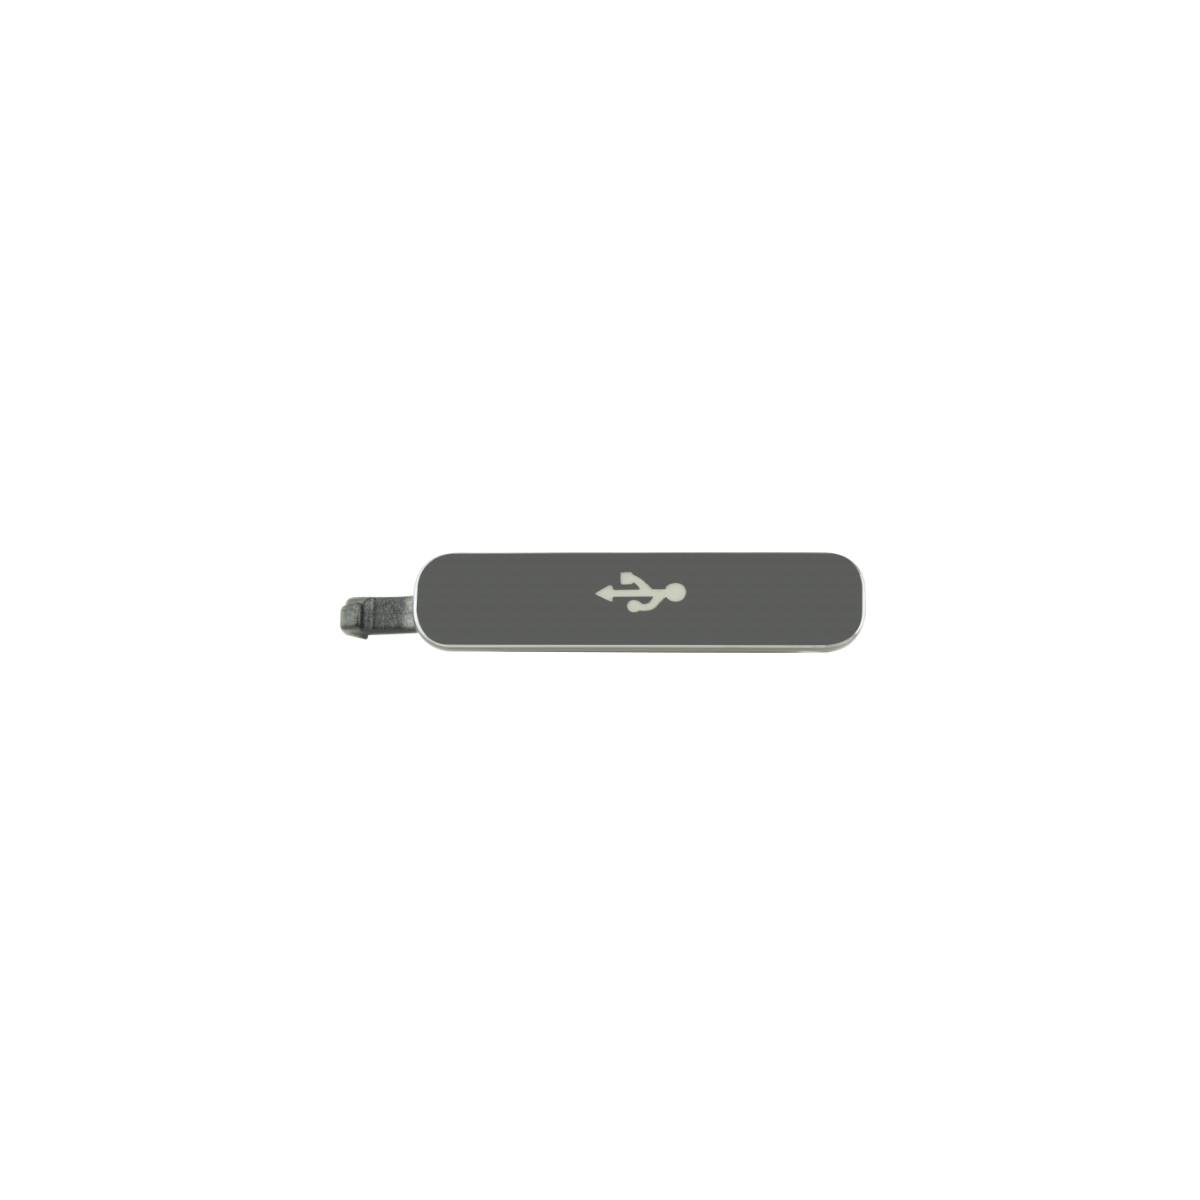 Samsung Galaxy S5 Charging Port Cover Replacement